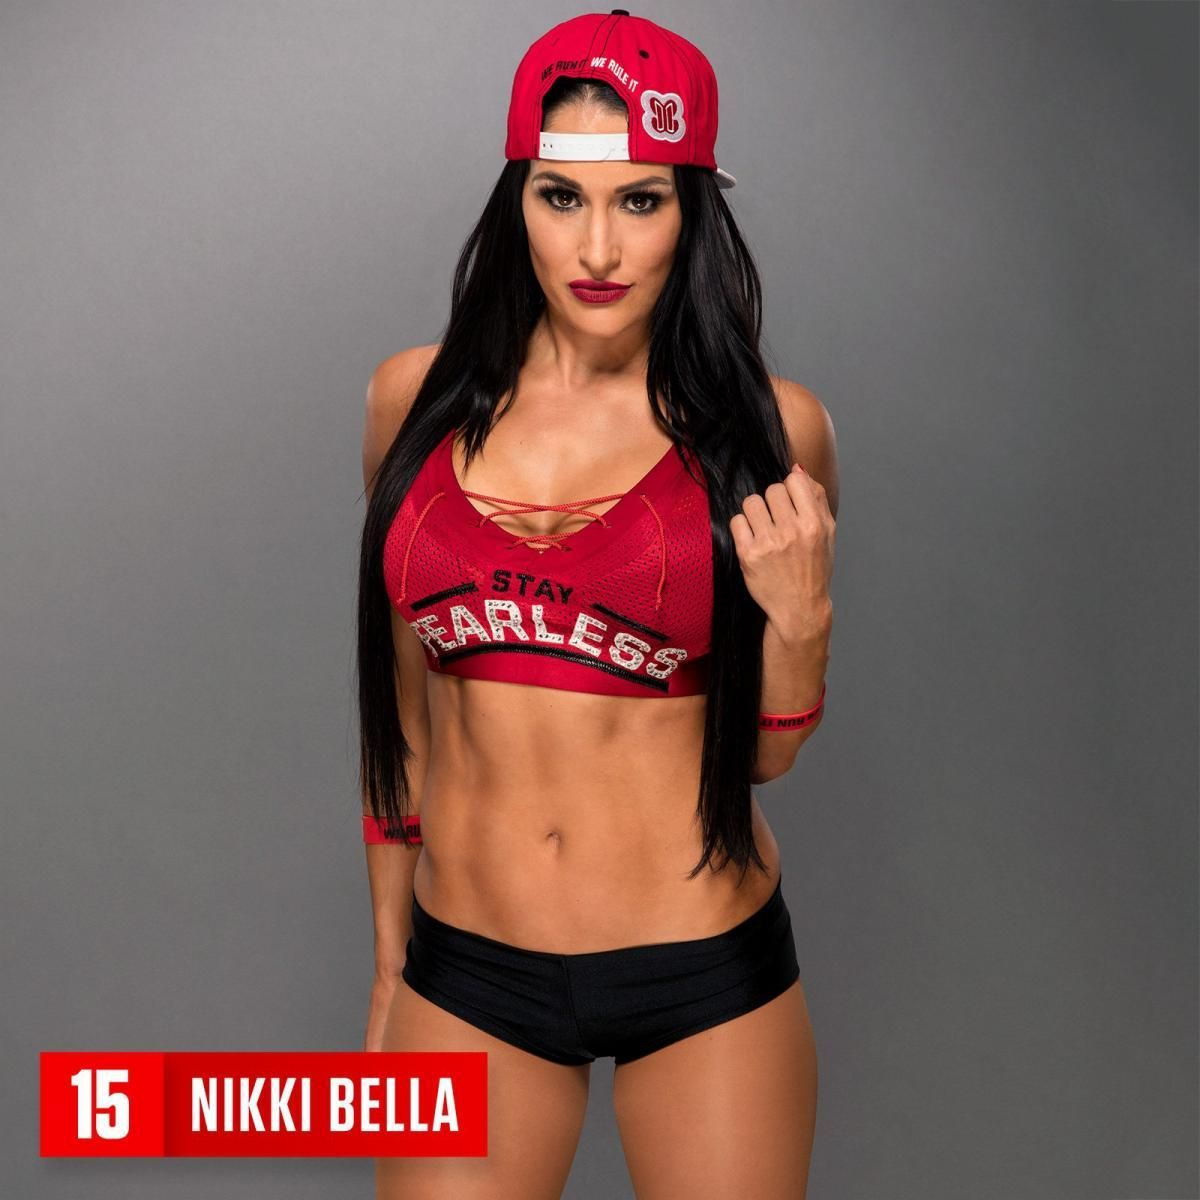 Lucha Libre Chicas Nikki Bella Listed As Having The Best Abs Wrestling